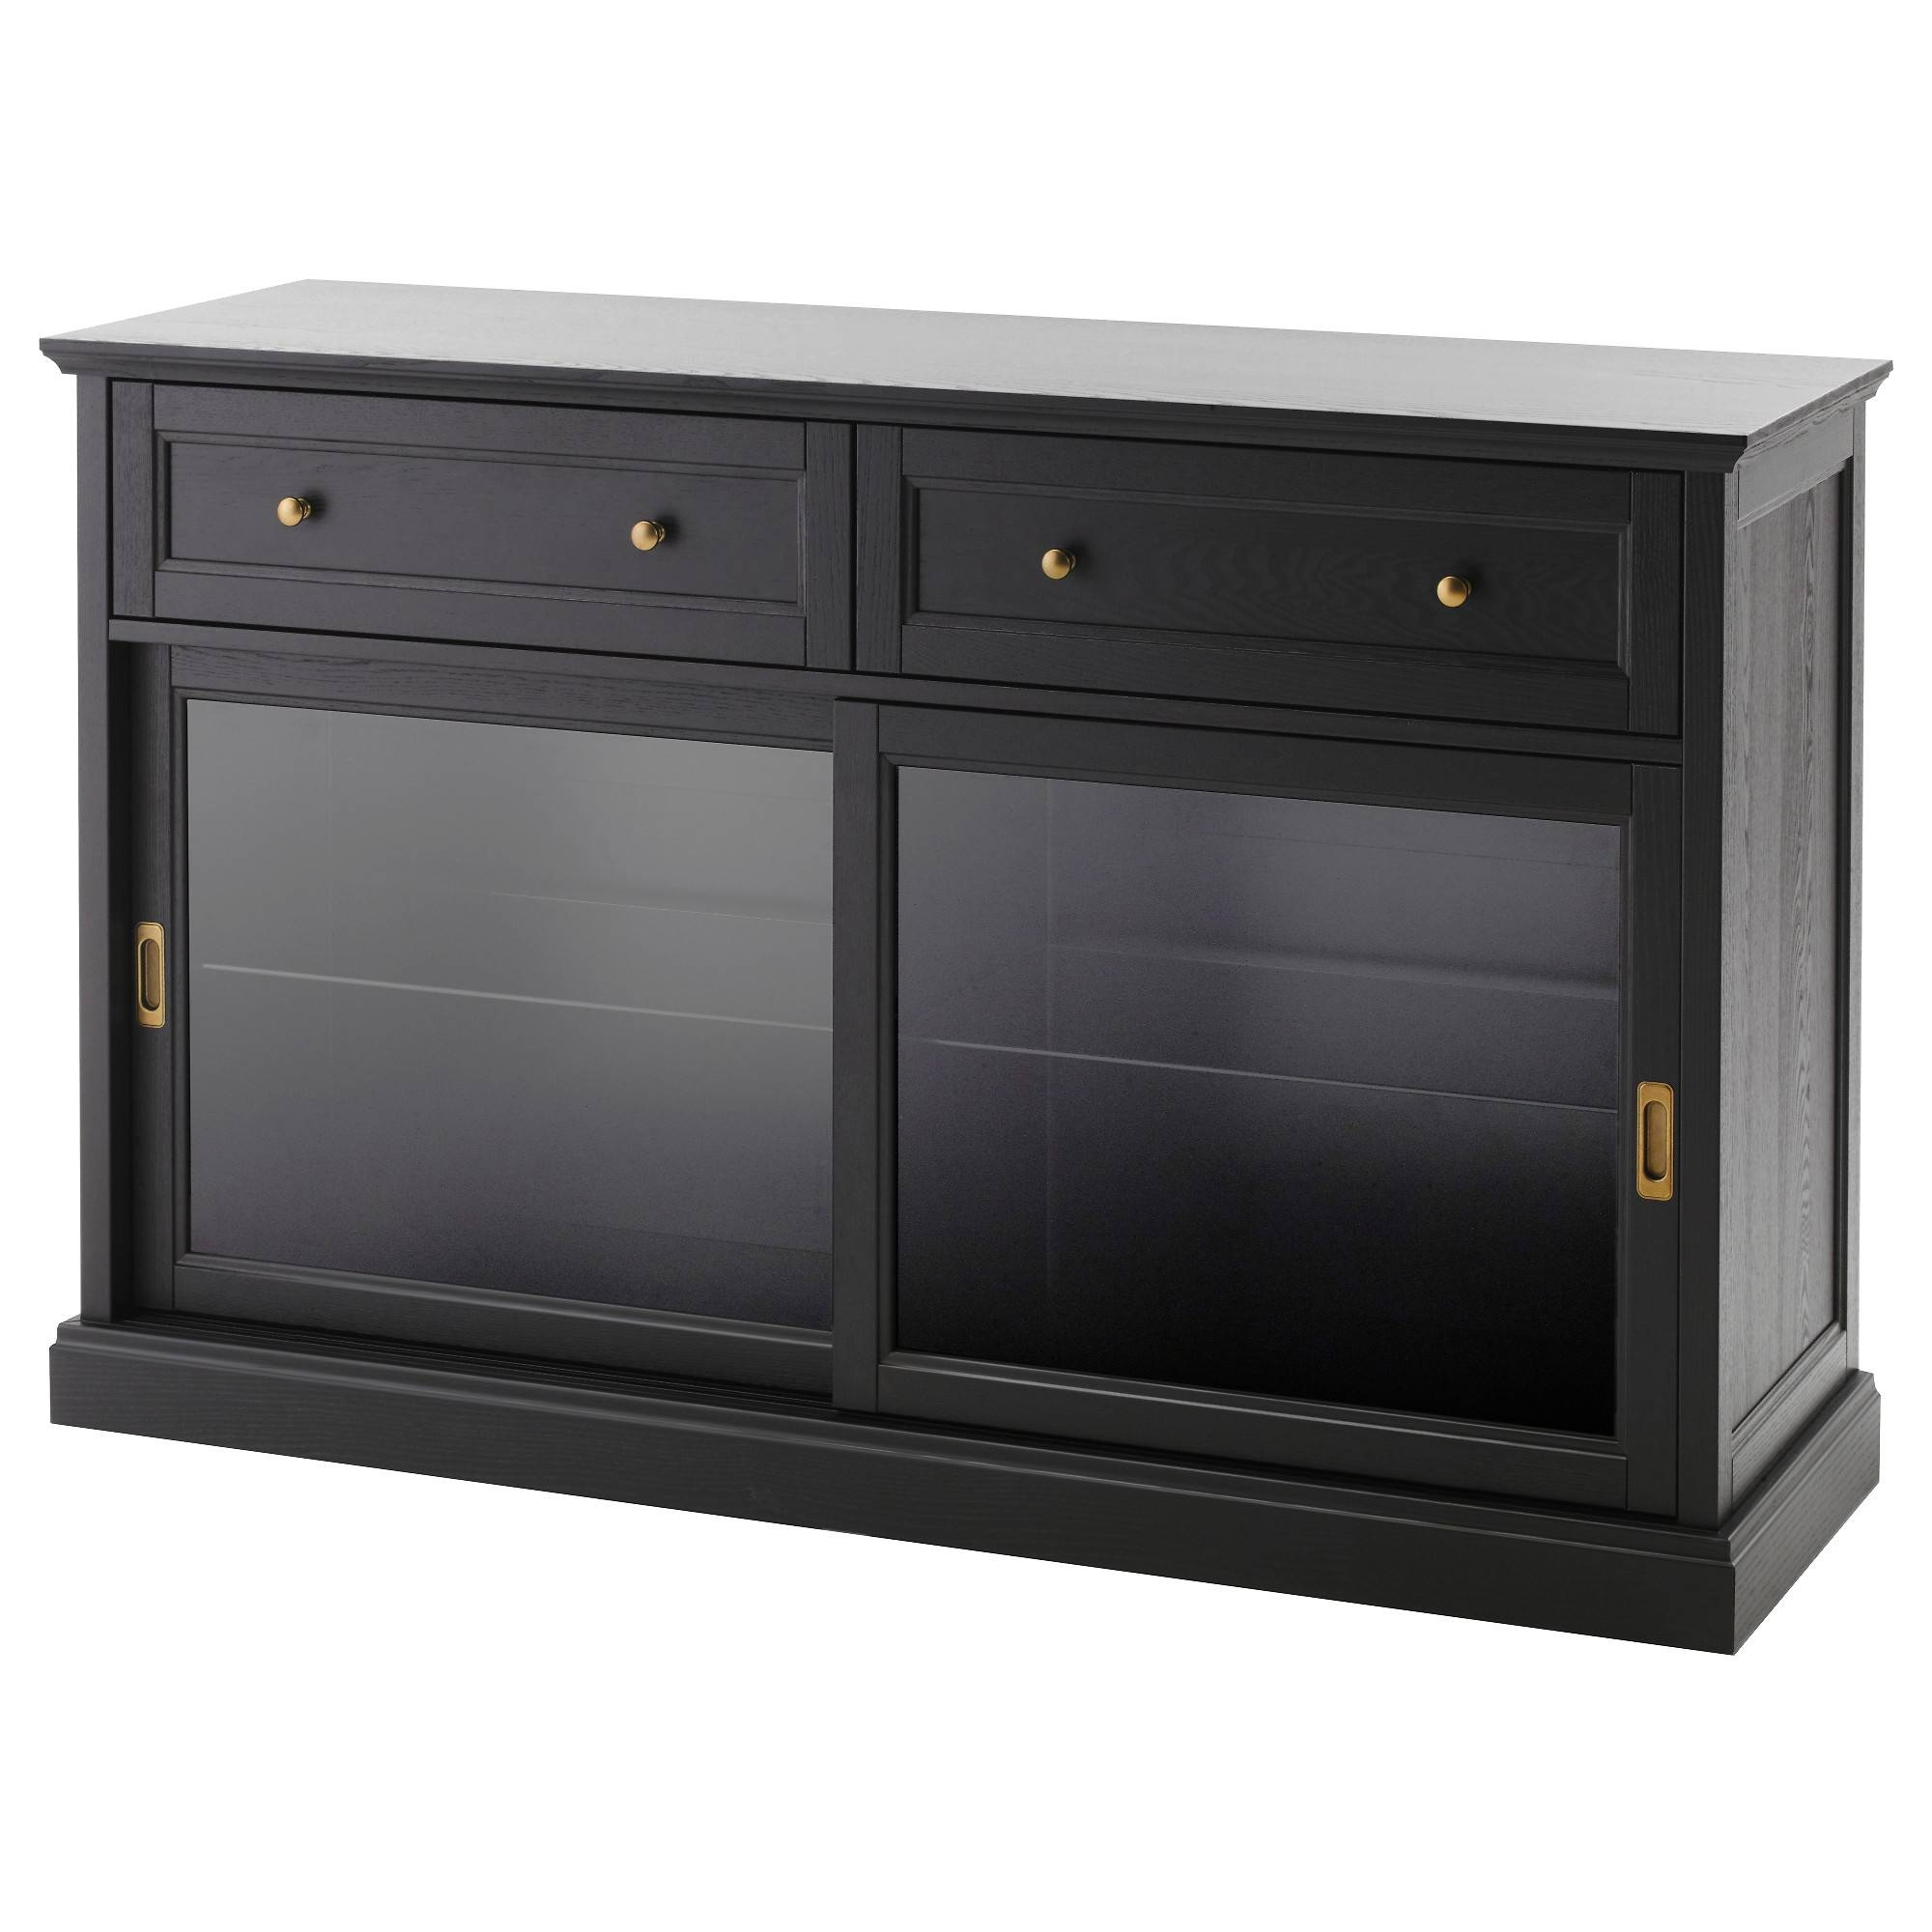 Sideboards & Buffet Cabinets | Ikea Regarding Cream And Brown Sideboards (View 12 of 15)